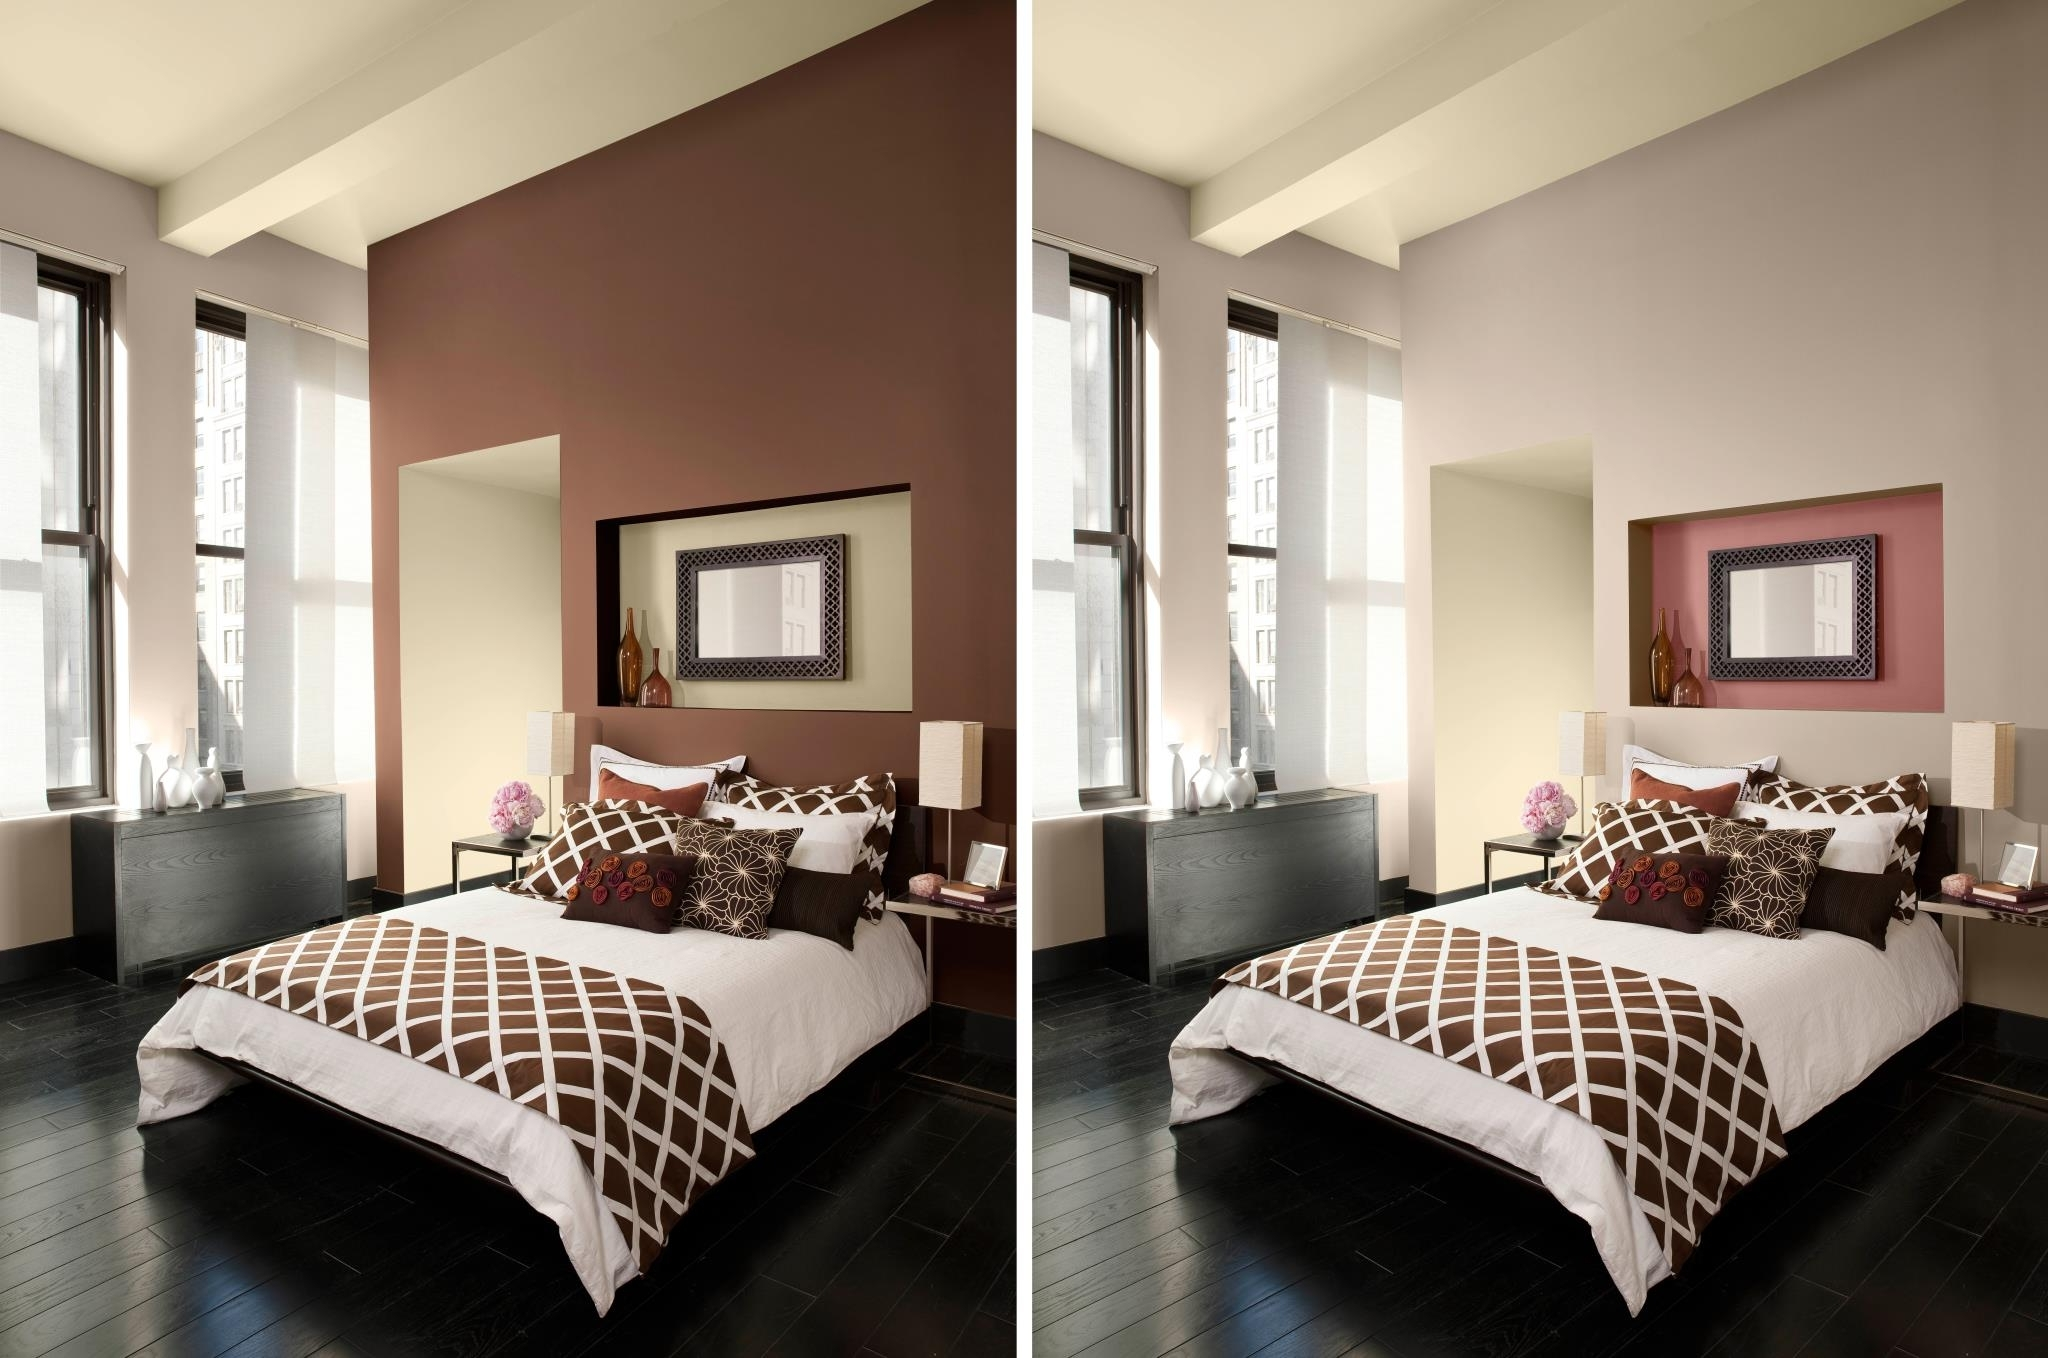 Easy Paint Designs For Walls Accent Wall Colors Ideas Wall Paint Intended For Favorite Wall Accents With Paint (View 5 of 15)